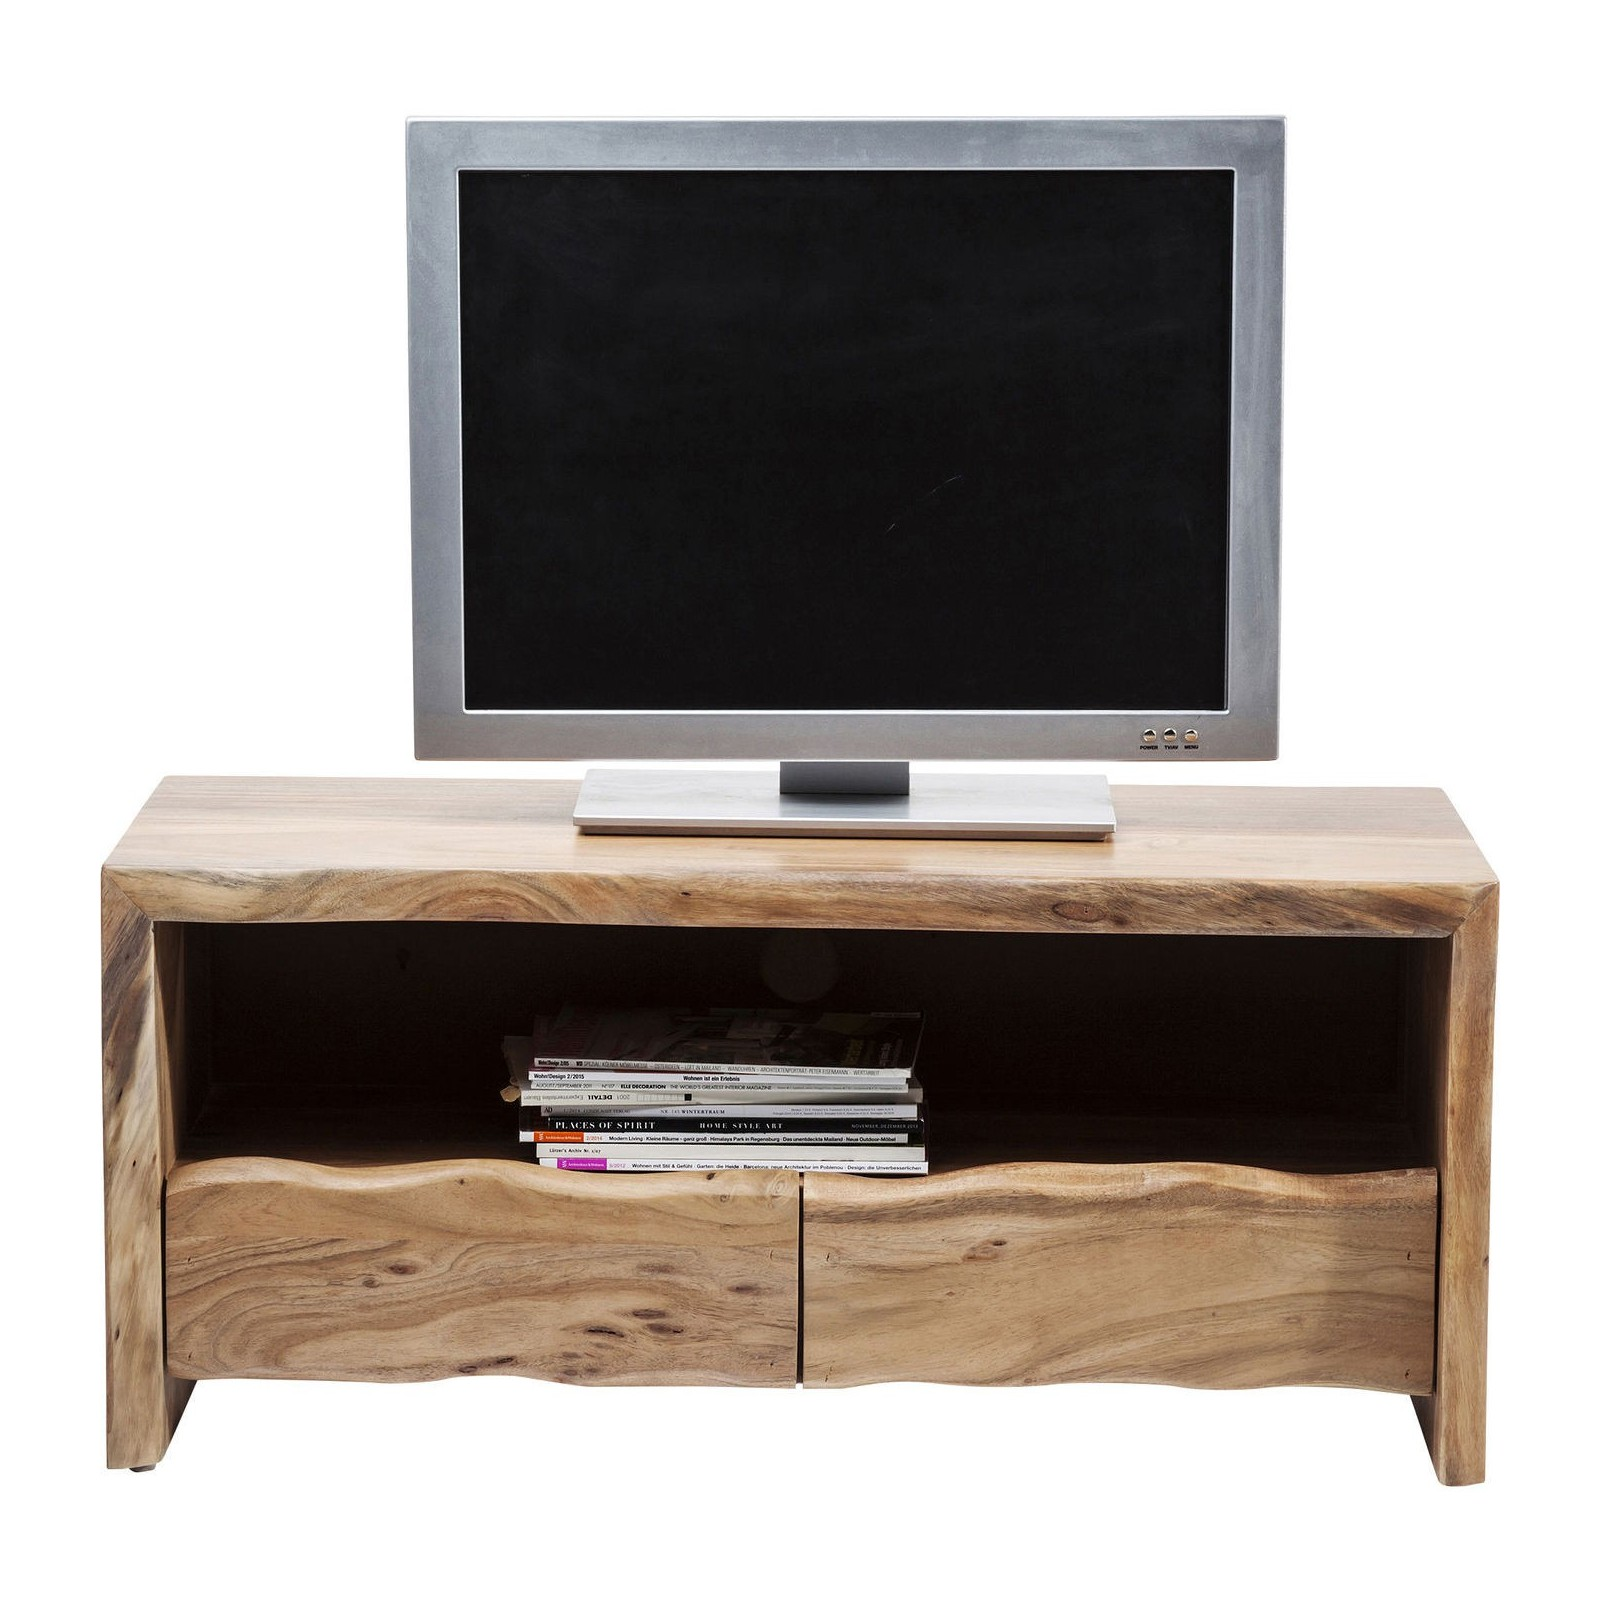 Meuble tv scandinave en bois pure nature kare design for Meuble tv scandinave 110 cm